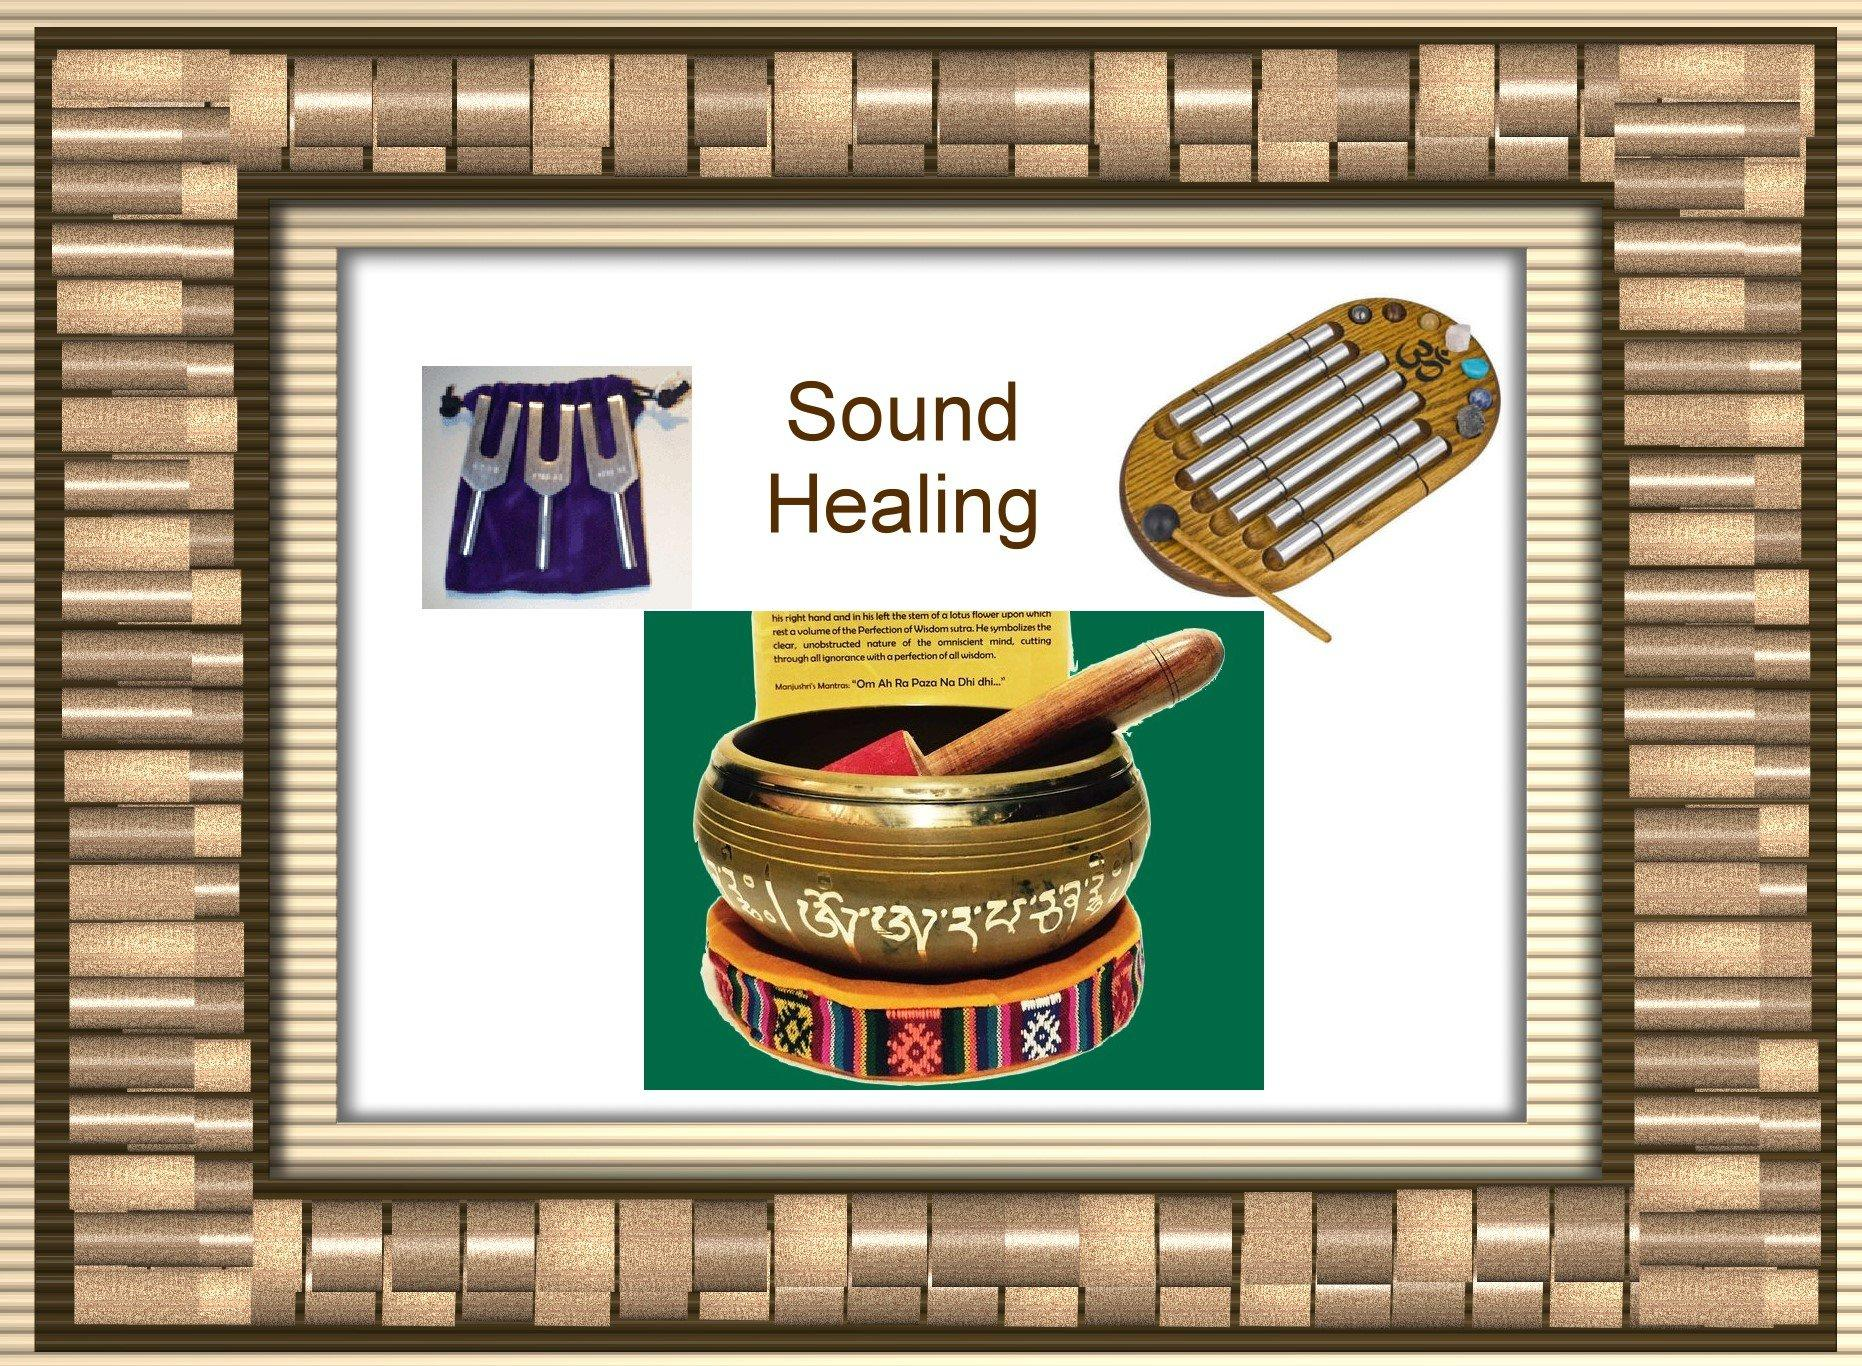 Sound Healing Gifts - Singing Bowls, Tuning Forks, Chimes